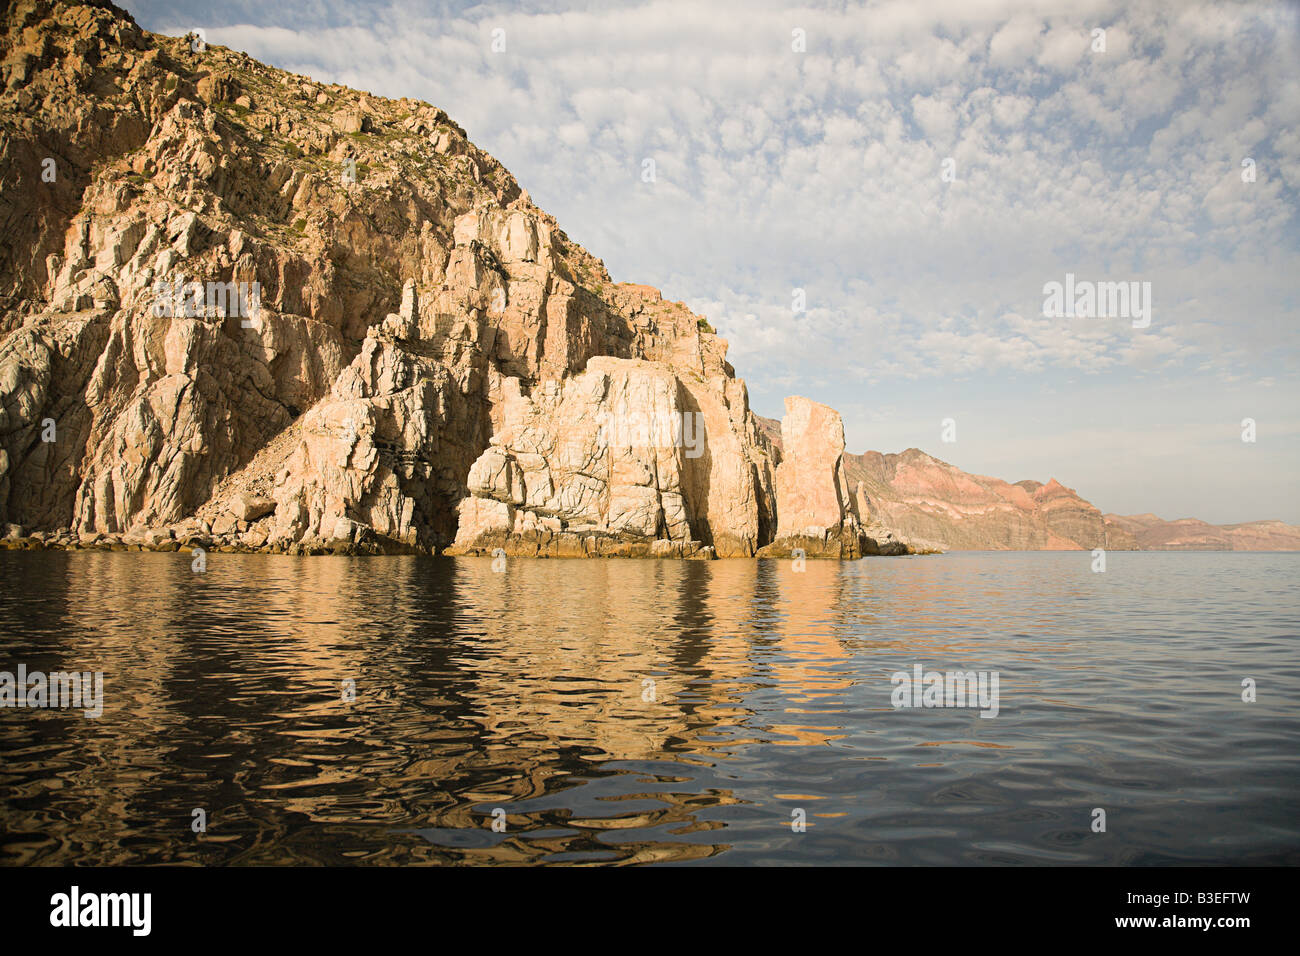 Cliff and sea - Stock Image